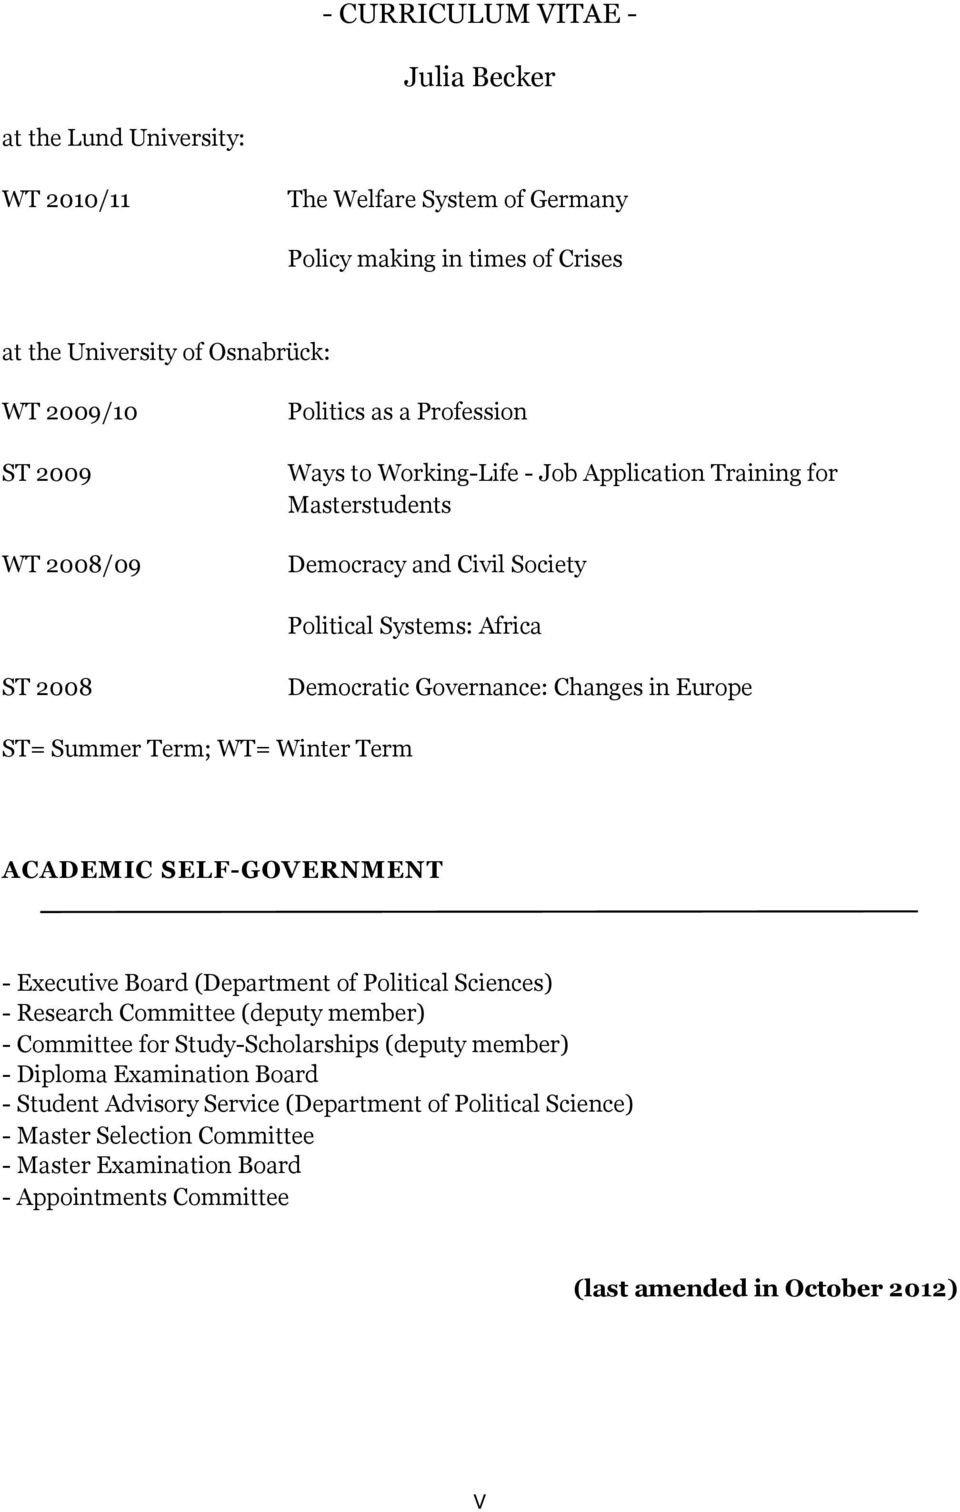 WT= Winter Term ACADEMIC SELF-GOVERNMENT - Executive Board (Department of Political Sciences) - Research Committee (deputy member) - Committee for Study-Scholarships (deputy member) -